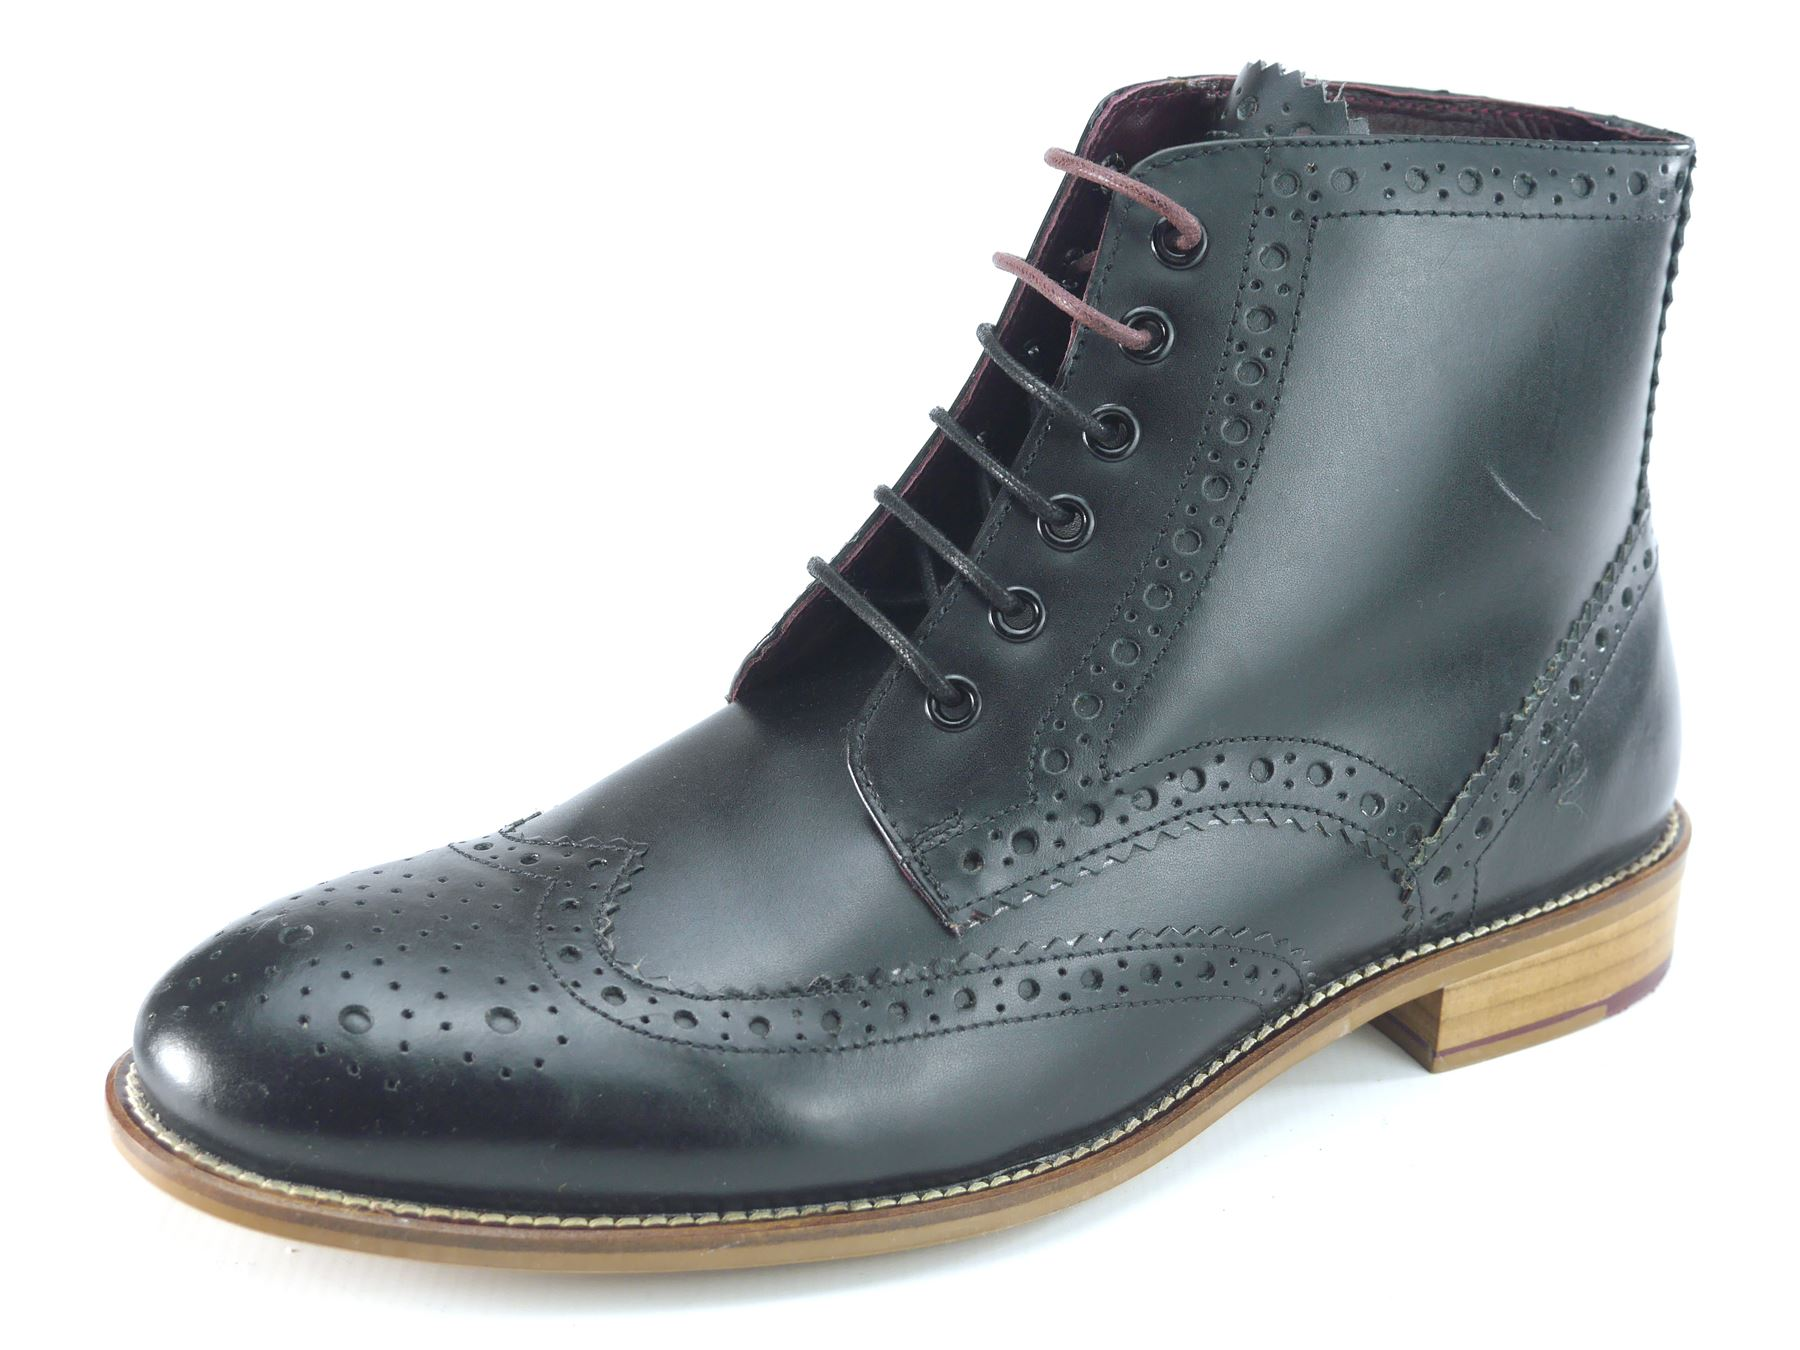 How to Wear Men's Brogues Brogues are a staple piece of footwear that every guy should have in his wardrobe. However, a lot of men are wondering how they should wear men's brogues and what pieces to style them with.